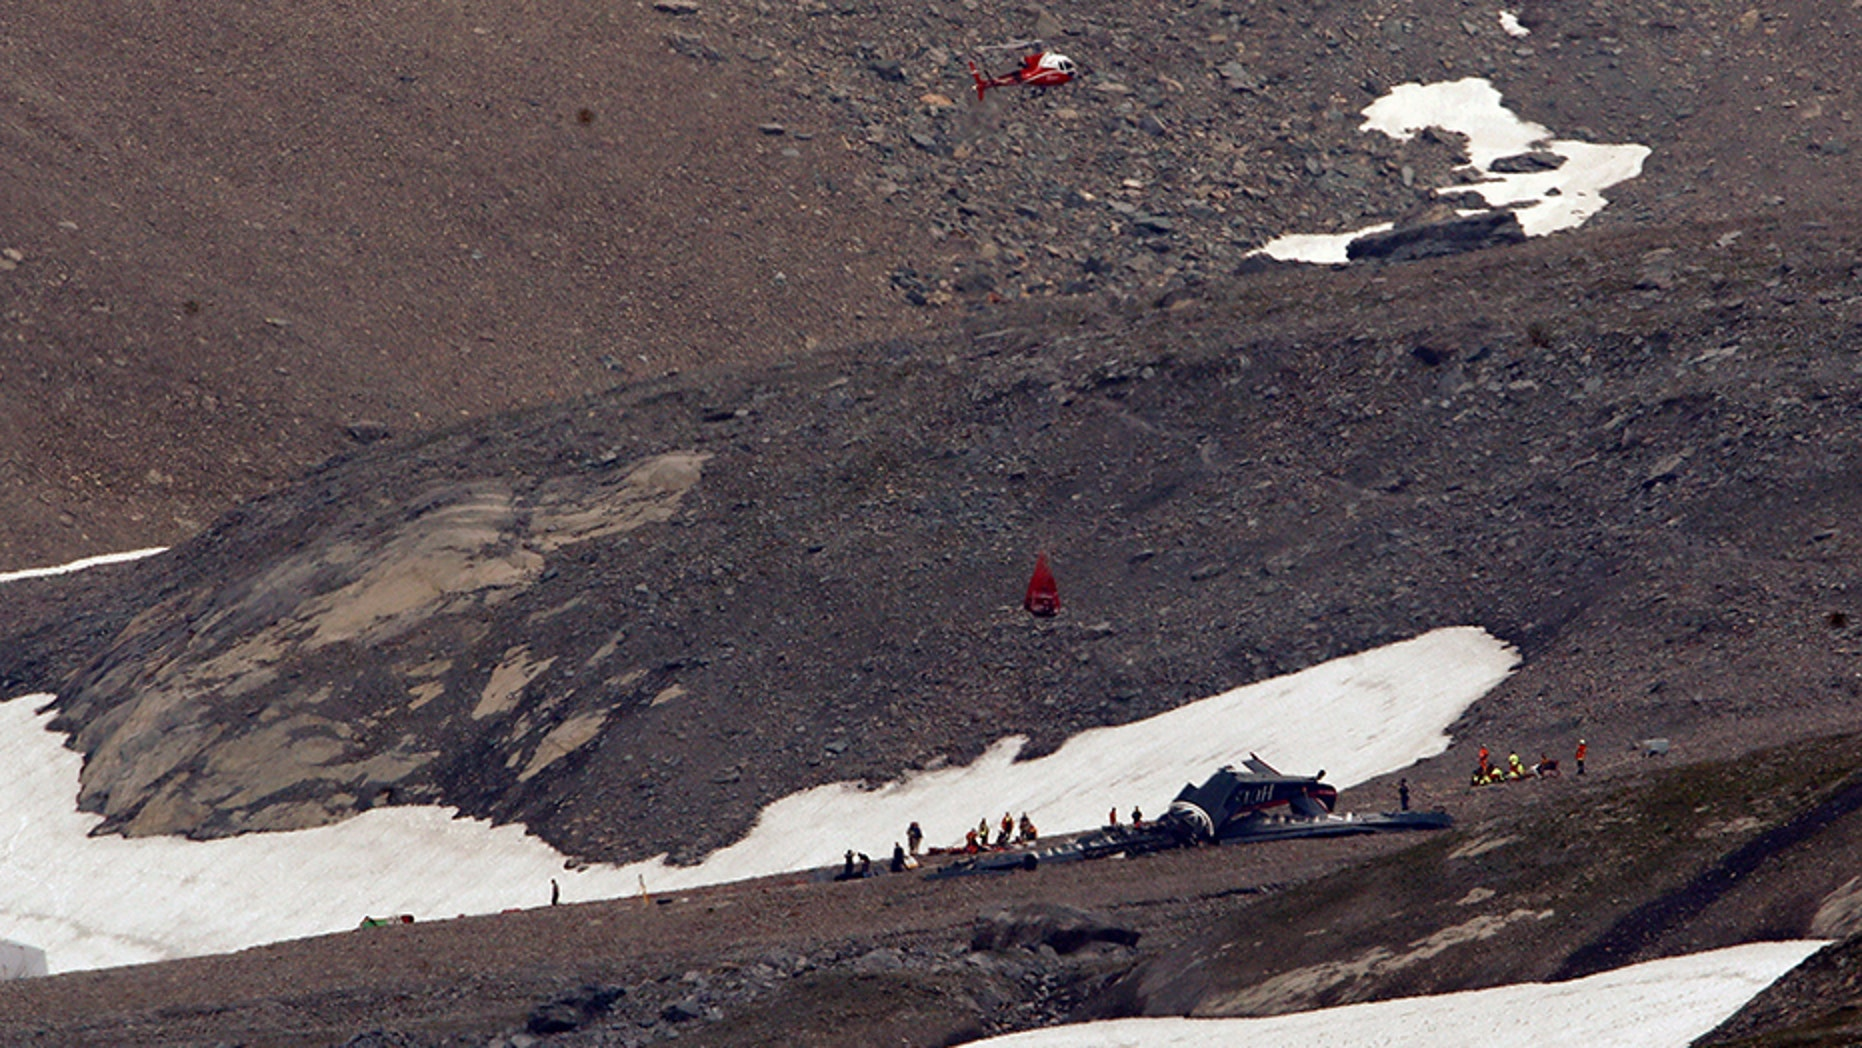 Police in southeastern Graubuenden canton (state) said a plane crashed Saturday on the Piz Segnas mountain above the Swiss Alpine resort of Flims, striking the mountain's western flank about 8,330 feet above sea level.